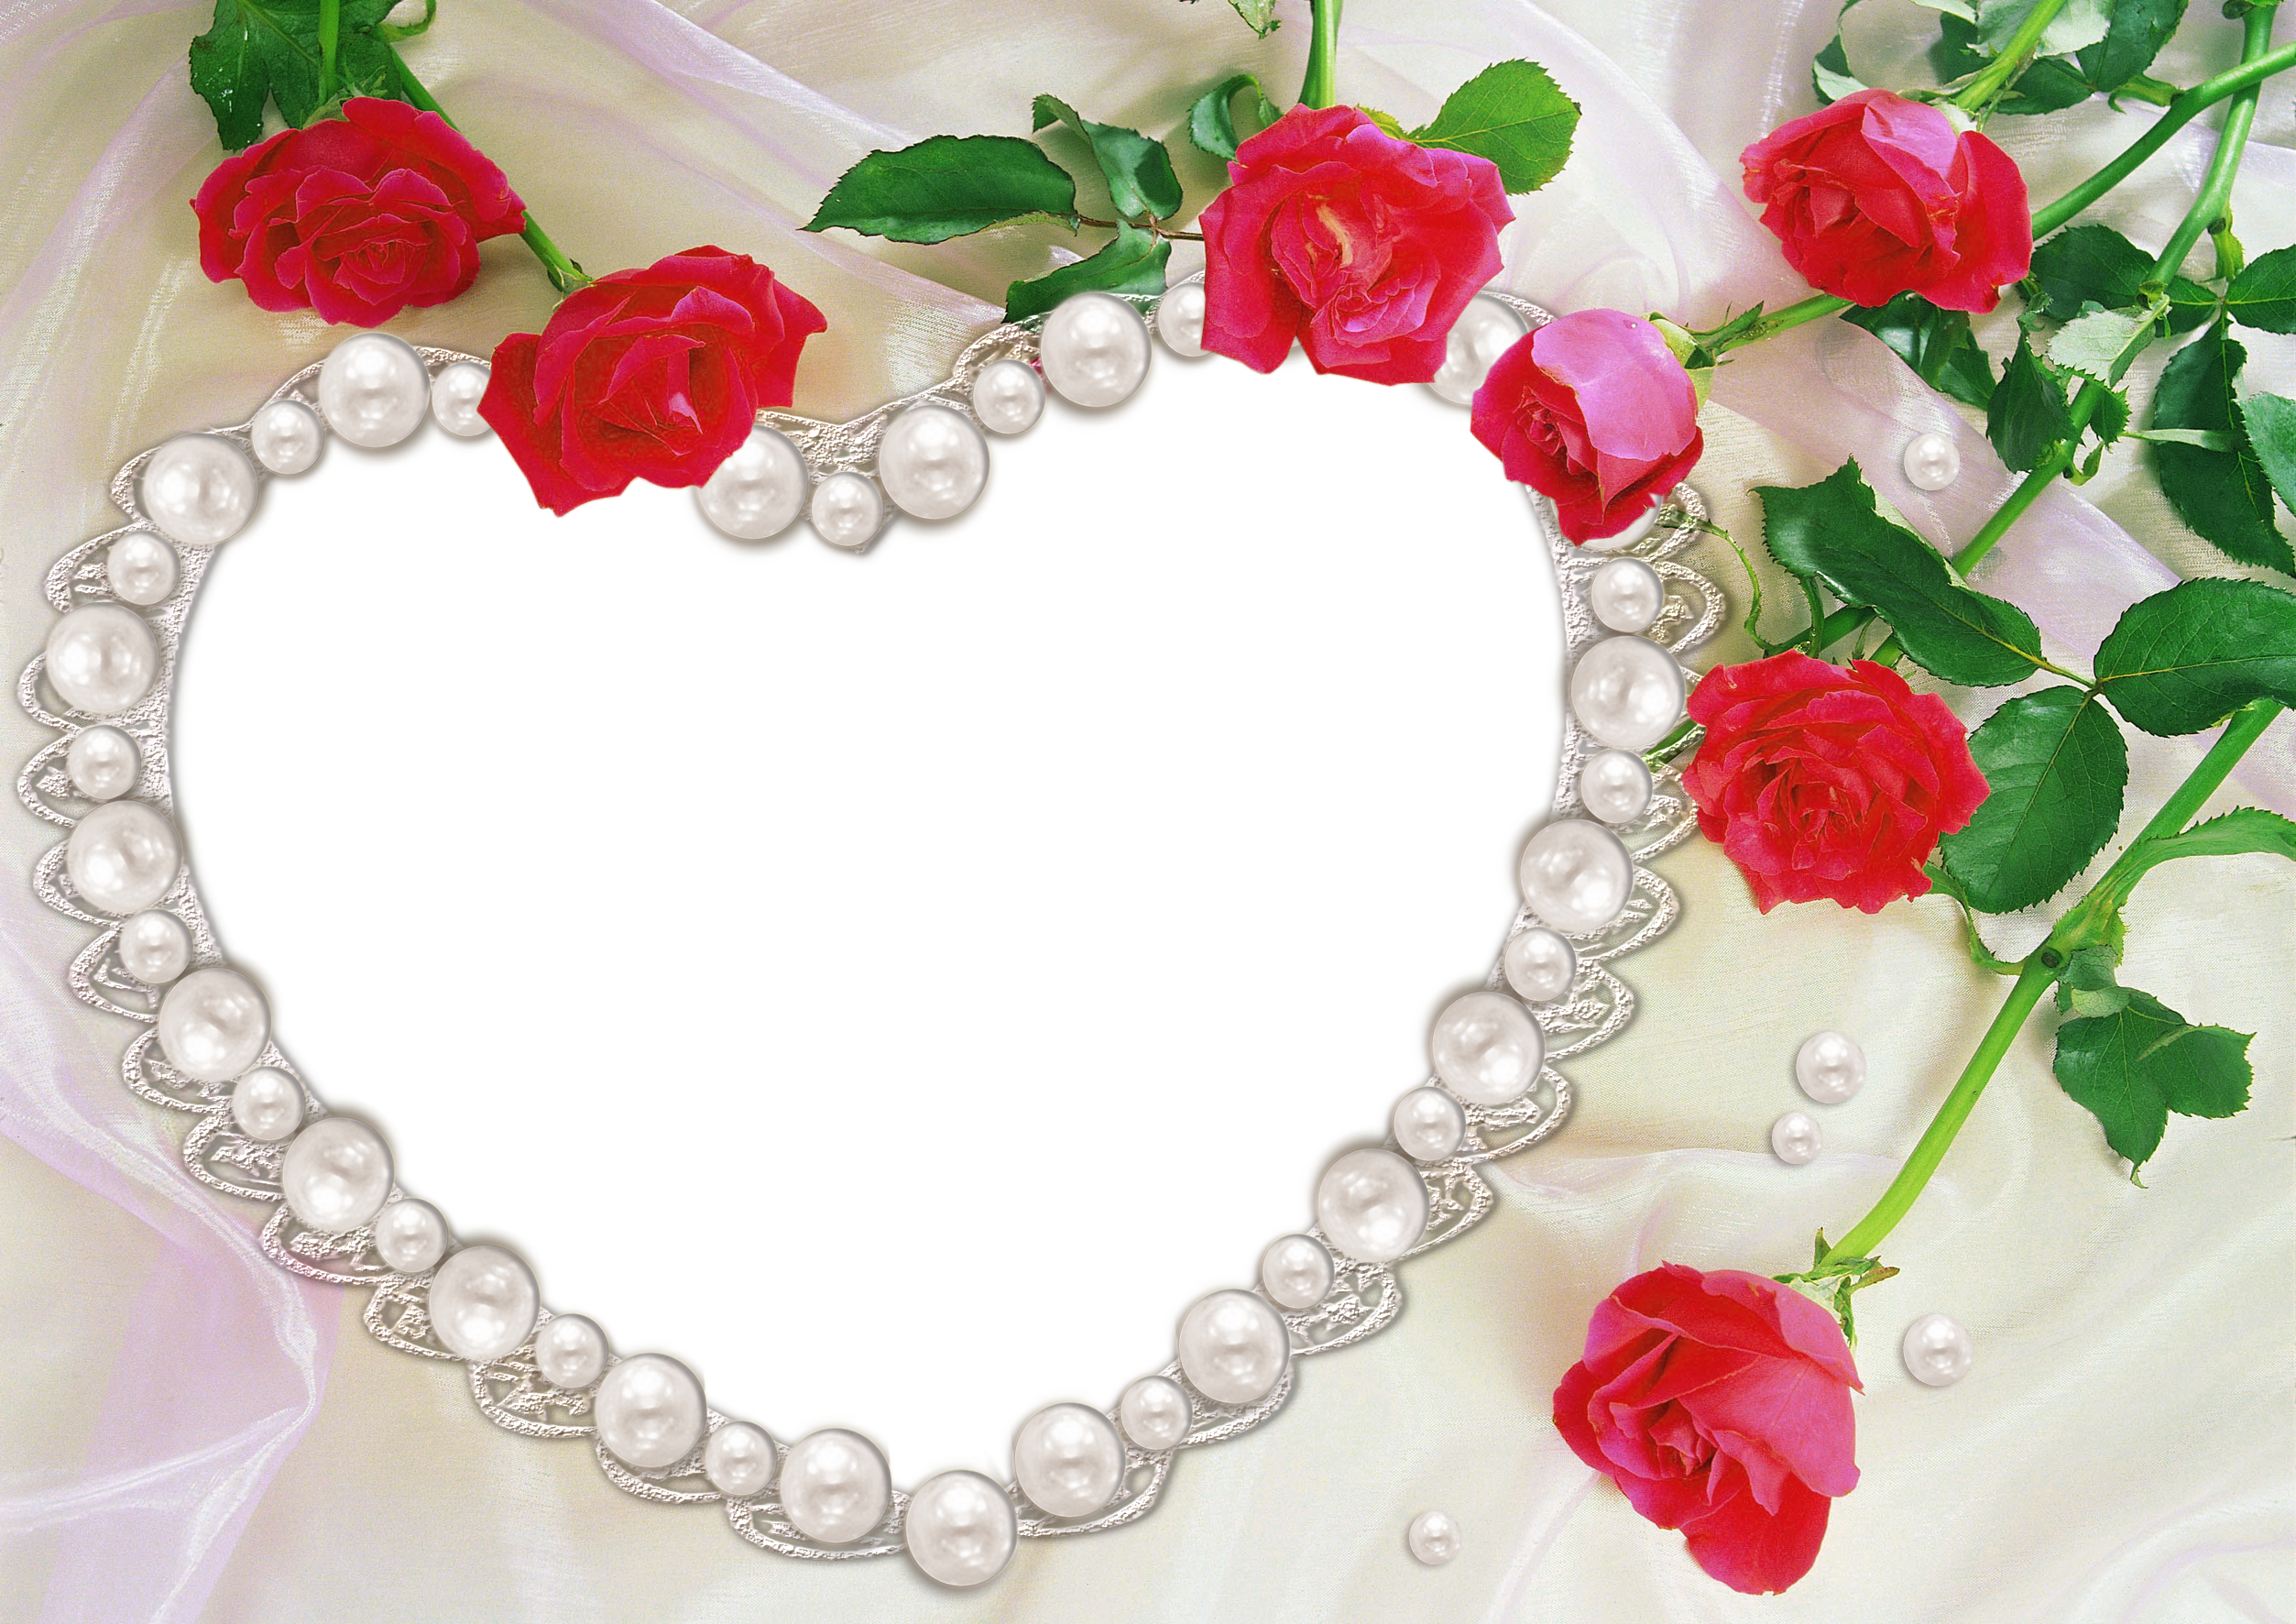 Clipart rose pearl. Heart and roses transparent